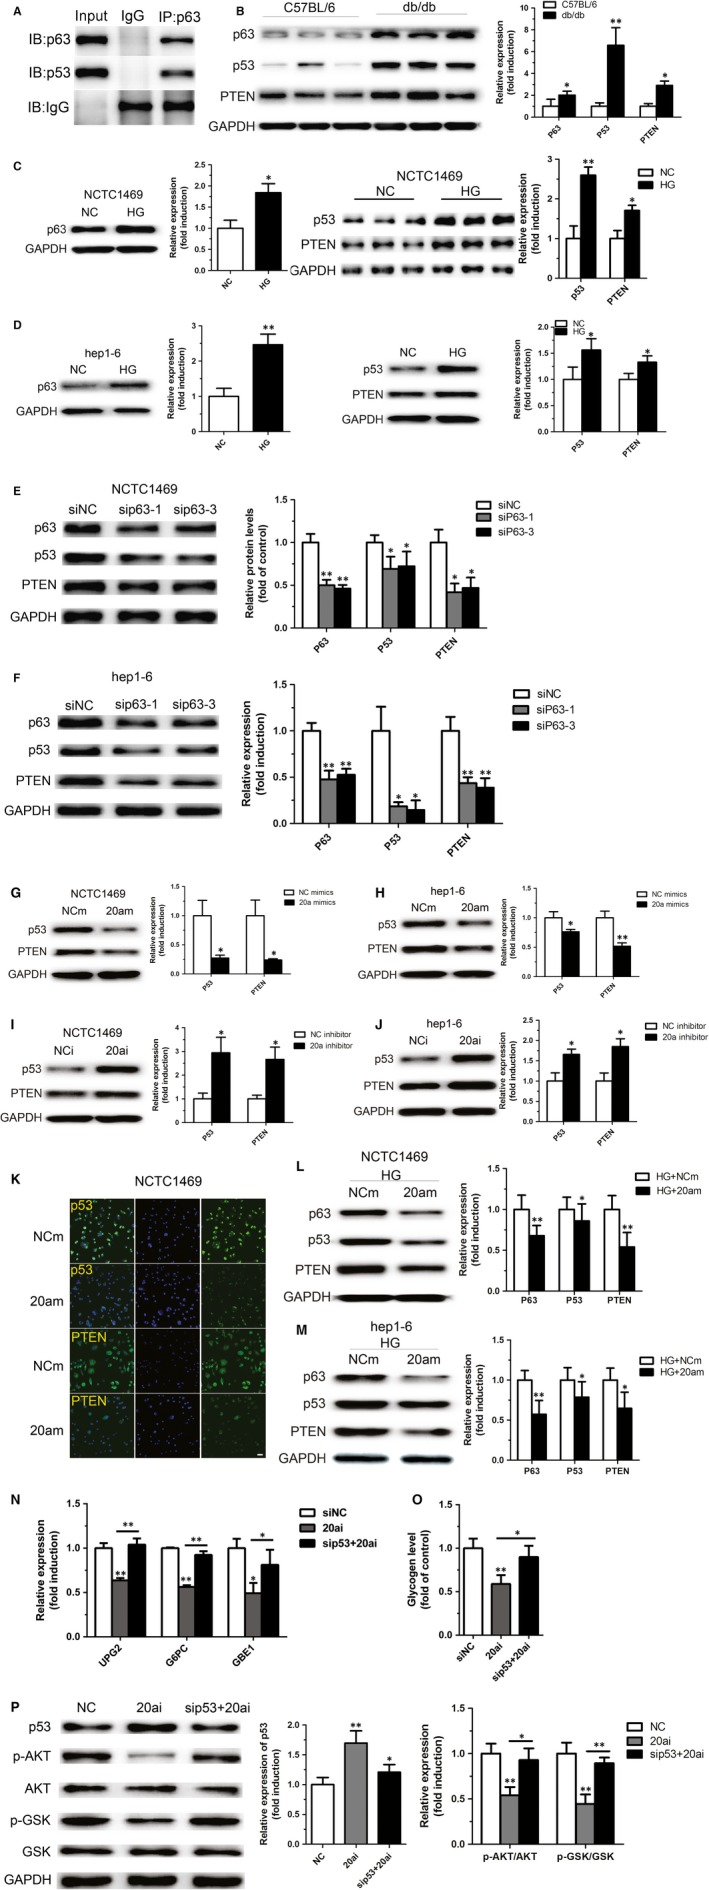 P63 regulates expression of PTEN by directly binding to p53. A direct interaction between p63 and p53 was observed by co‐immunoprecipitation ( A ). The levels of p63, p53 and PTEN protein were measured in the liver of db/db mice ( B ), NCTC 1469 cells ( C ) and Hep1‐6 cells ( D ) treated with high glucose as well as NCTC 1469 cells ( E ) and Hep1‐6 cells ( F ) transfected with si RNA targeting p63. Overexpression of miR‐20a‐5p led to decreased protein levels of p53 and PTEN ( G and H ), whereas inhibition of miR‐20a‐5p increased the expression of p53 and PTEN ( I and J ). Transfection of miR‐20a‐5p mimic significantly decreased the fluorescence intensity of p53 and PTEN , as shown by immunofluorescence assay ( K ). Moreover, overexpression of miR‐20a‐5p in NCTC 1469 cells and Hep1‐6 cells could reverse high glucose‐induced increased expression of p63, p53 and PTEN ( L and M ). Moreover, p53 knockdown could reverse miR‐20a‐5p inhibition‐induced reduced expression of genes related to hepatic glycogen synthesis such as UPG 2, G6 PC and GBE 1 ( N ) and hepatic glycogen synthesis ( O ), and activation of AKT and GSK ( P ) in the NCTC 1469 cells treated by miR‐20a‐5p inhibition. Scale bar represents 20 μm. Data represent the mean ± S.D. N = 5 mice or N = 3 independent experiments. * P